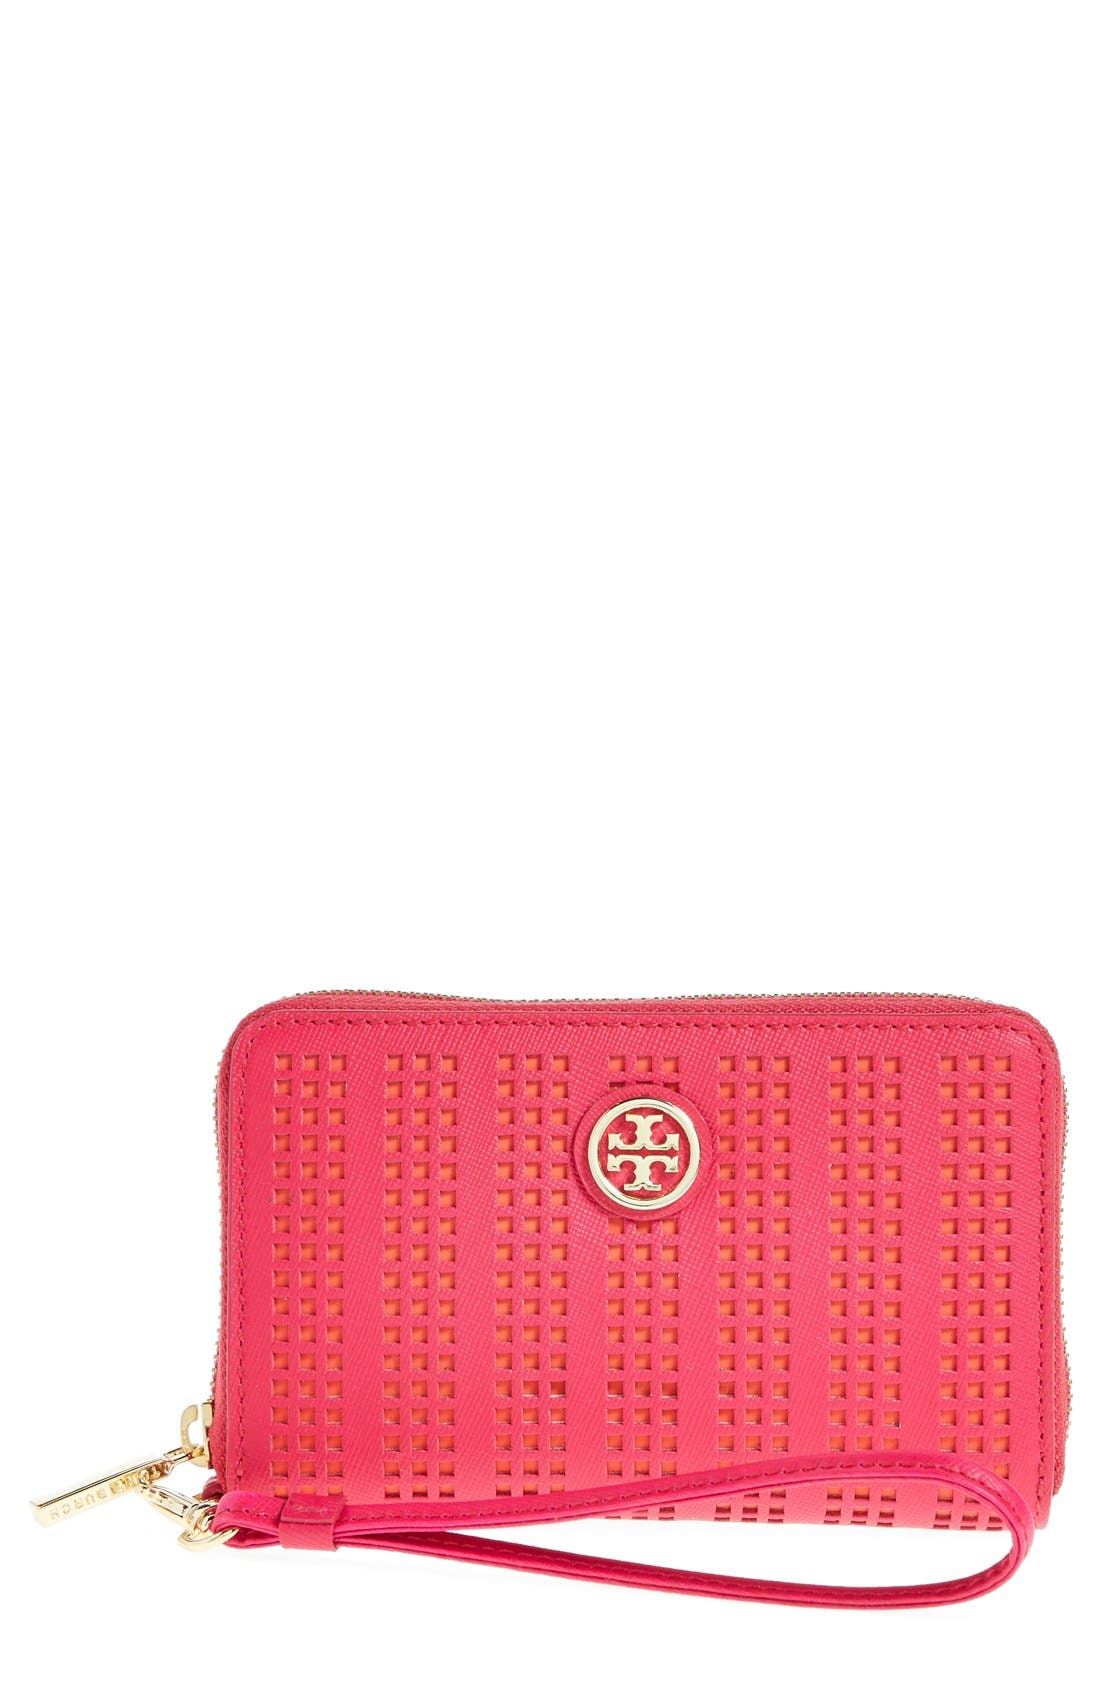 Alternate Image 1 Selected - Tory Burch 'Robinson' Perforated Smartphone Wristlet